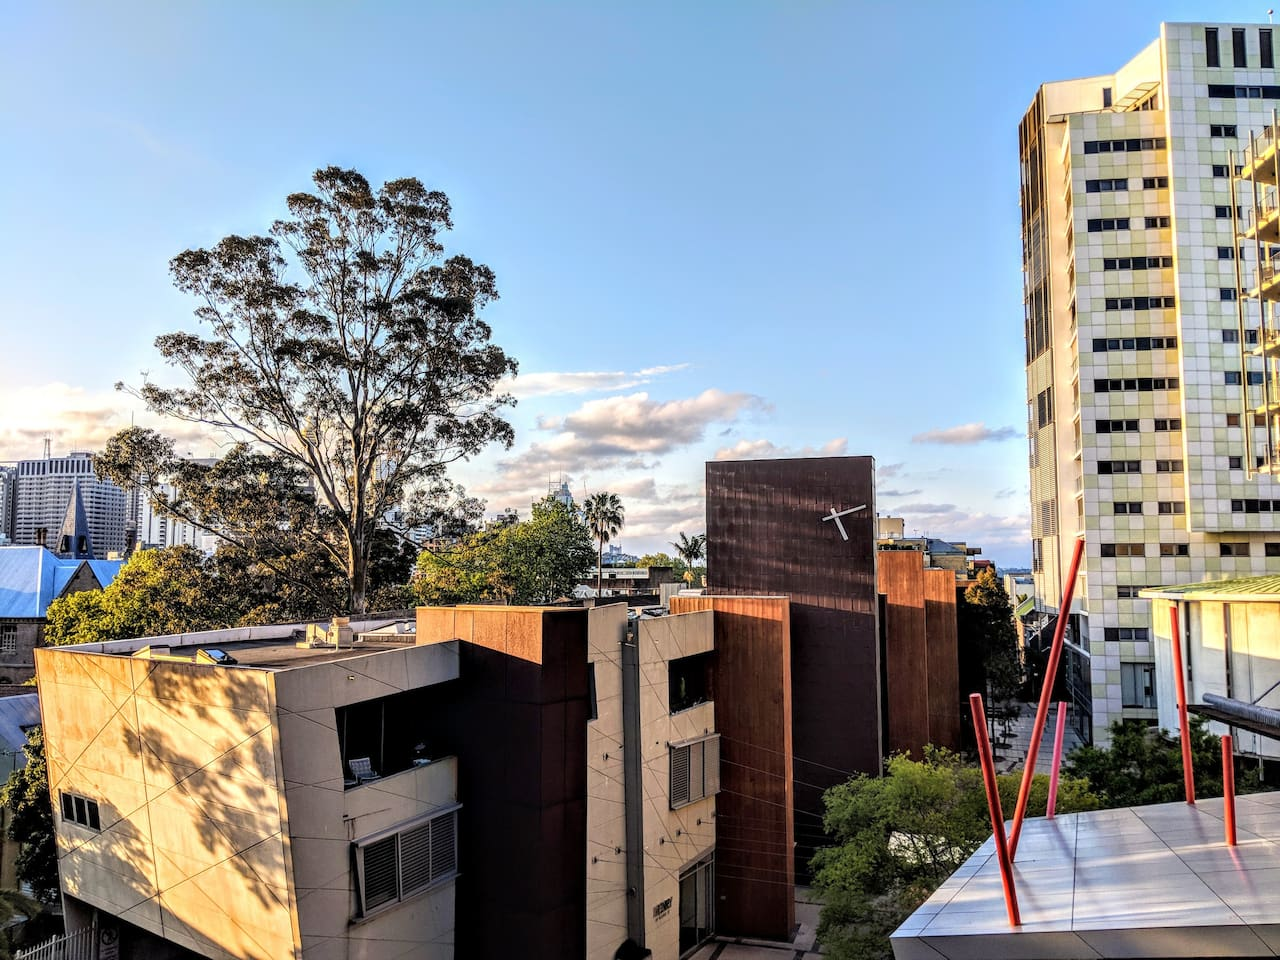 View from balcony of city skyline and glimpses of the Harbour Bridge